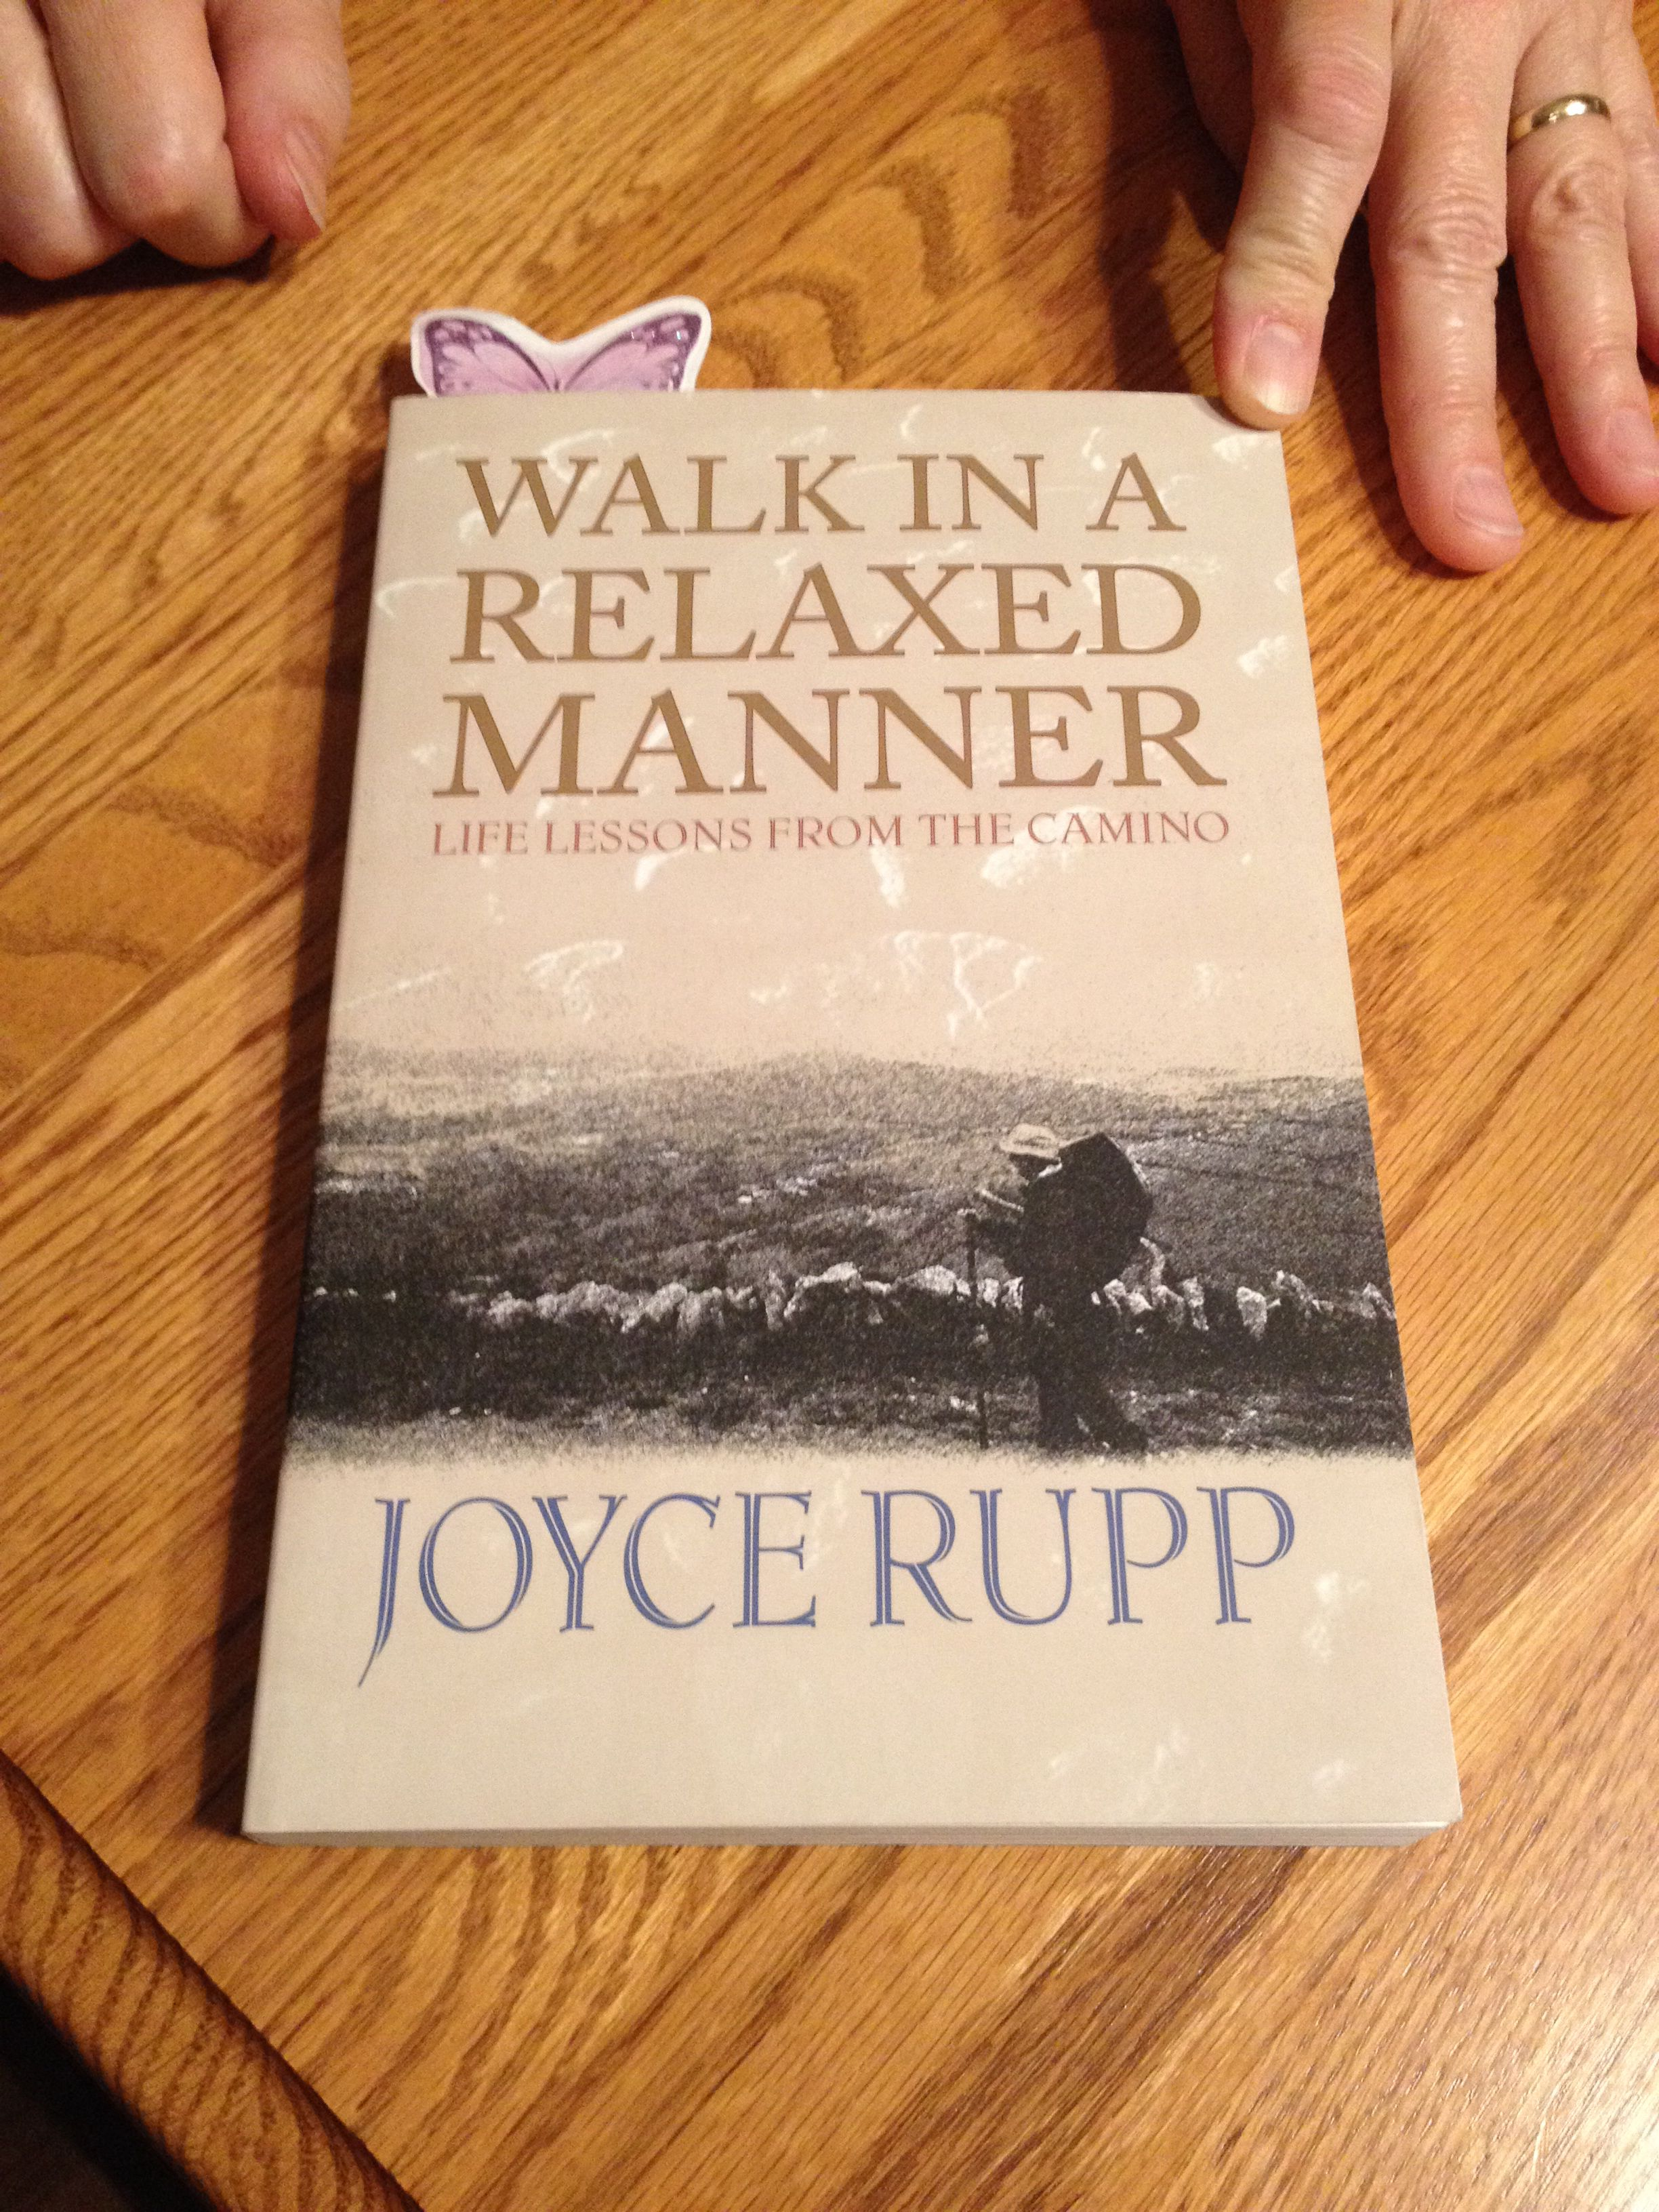 Walk in a relaxed manner, life lessons from the Camino. Joyce Rupp